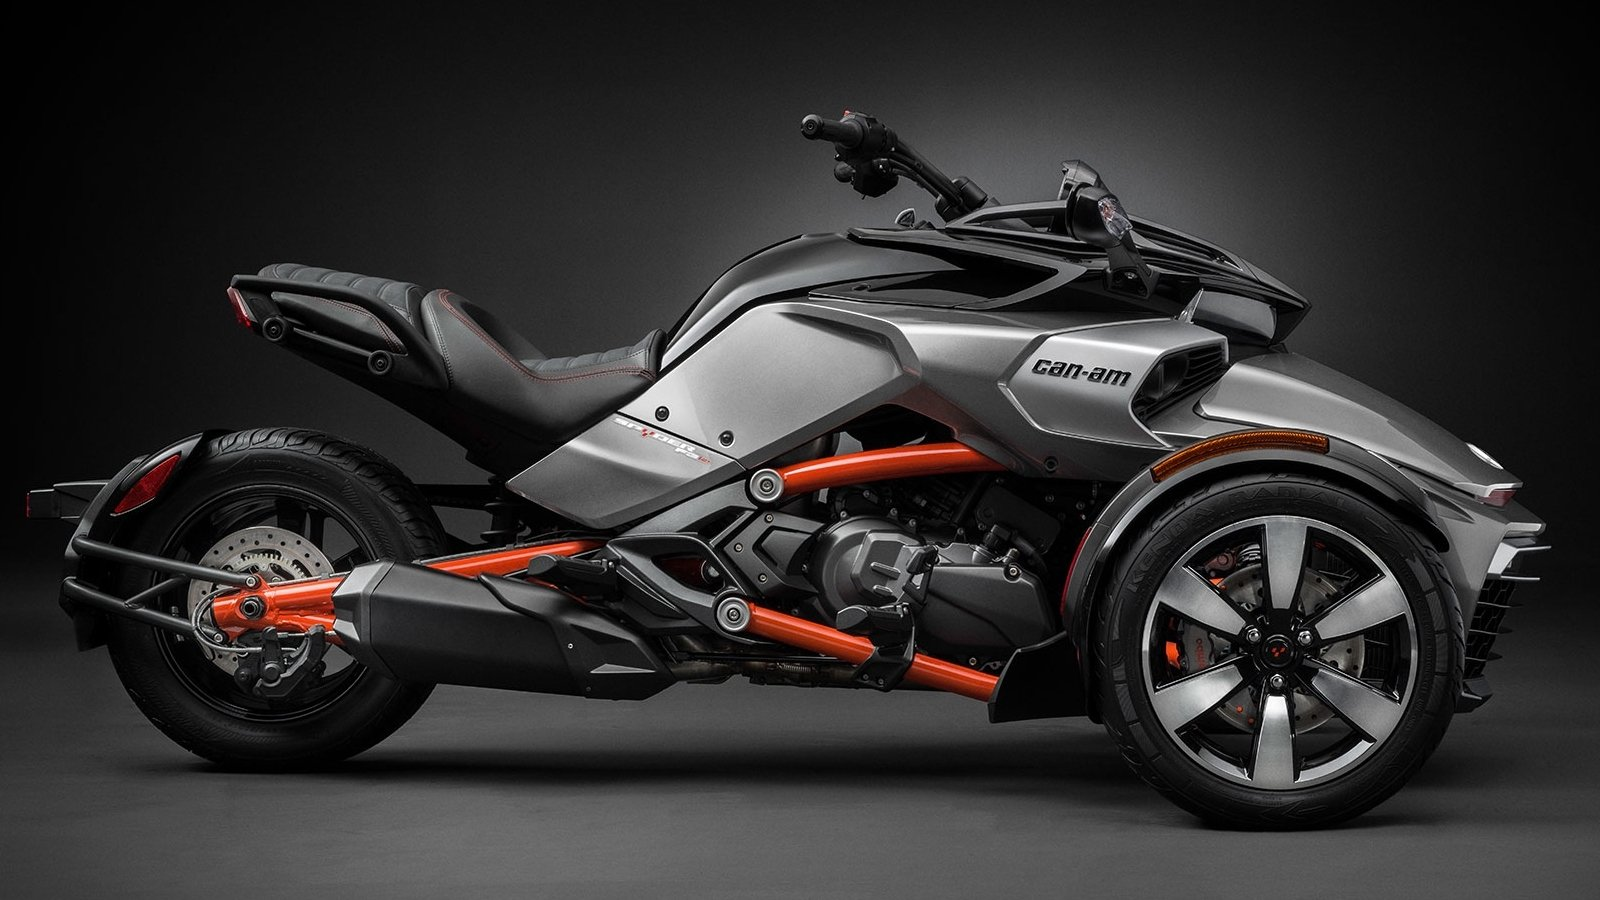 2016 2017 can am spyder f3 picture 659630 motorcycle review top speed. Black Bedroom Furniture Sets. Home Design Ideas